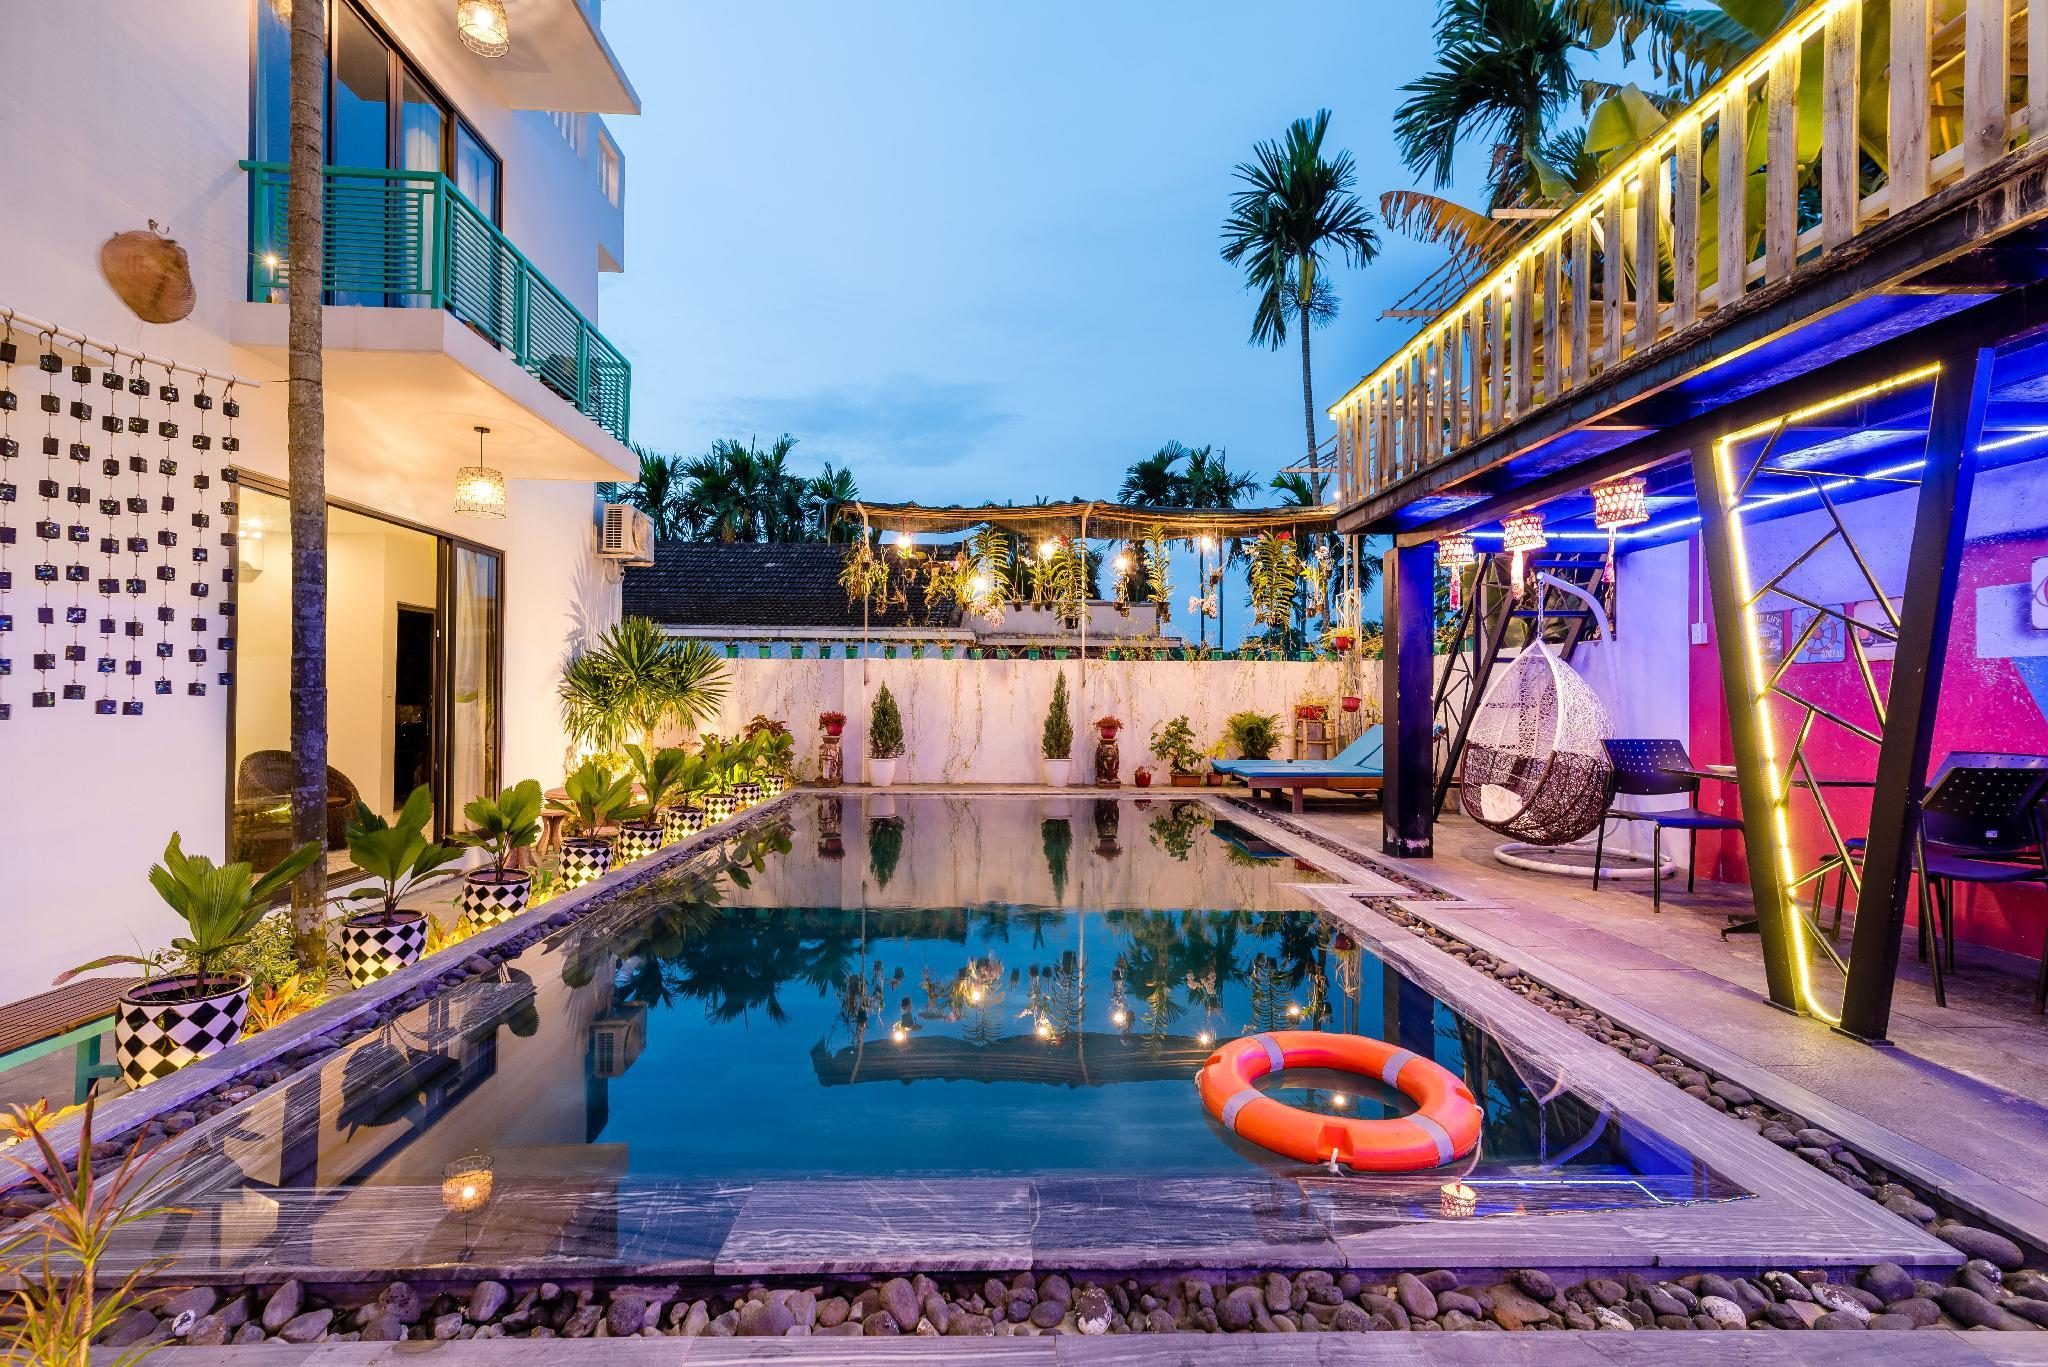 Homestay   5 Bedrooms   10minutes To Hoi An Town